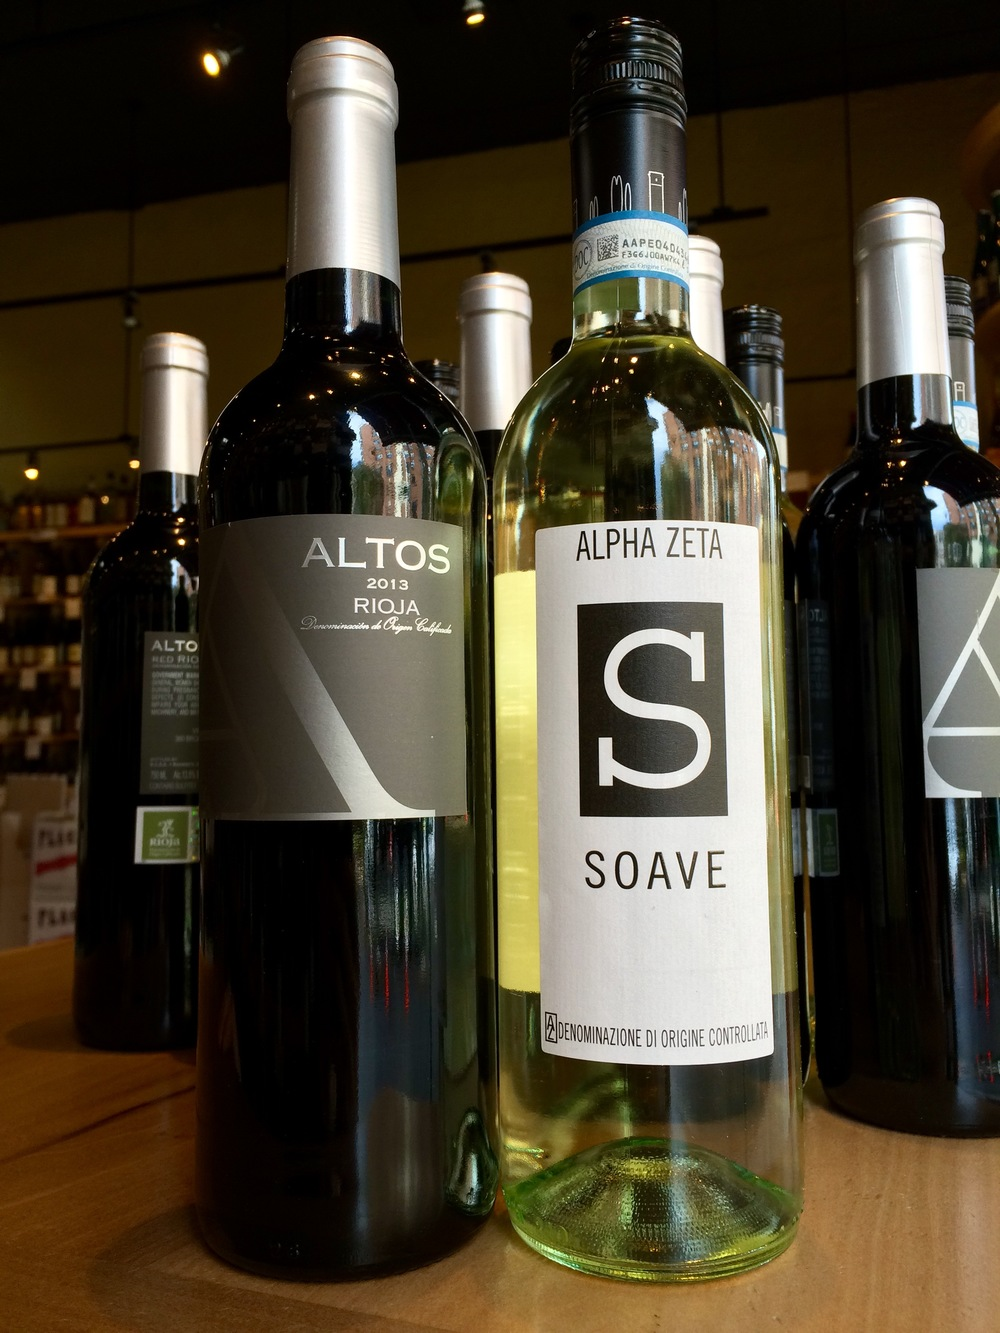 2013 Altos Rioja and 2014 Alpha Zeta Soave